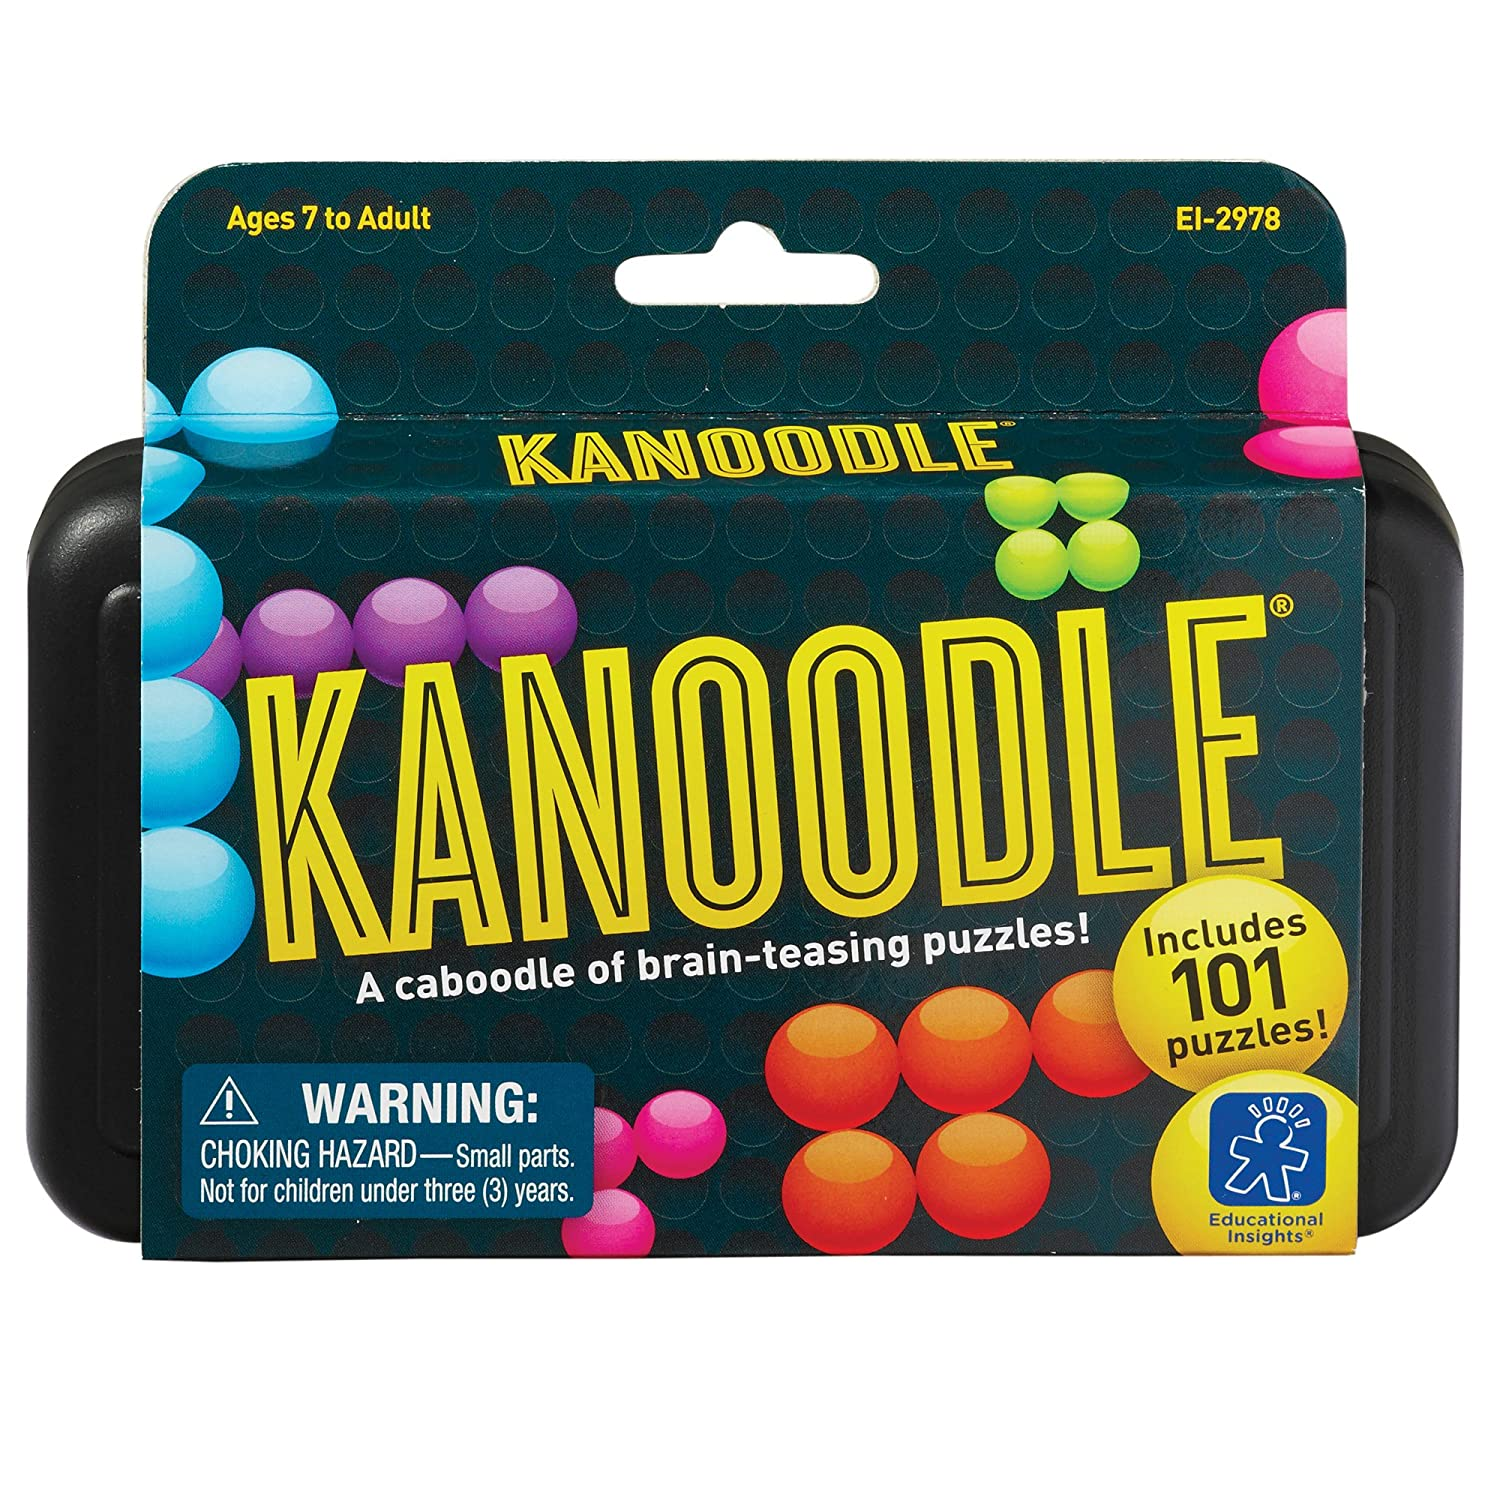 Kanoodle – The best-selling solo puzzle challenge game.